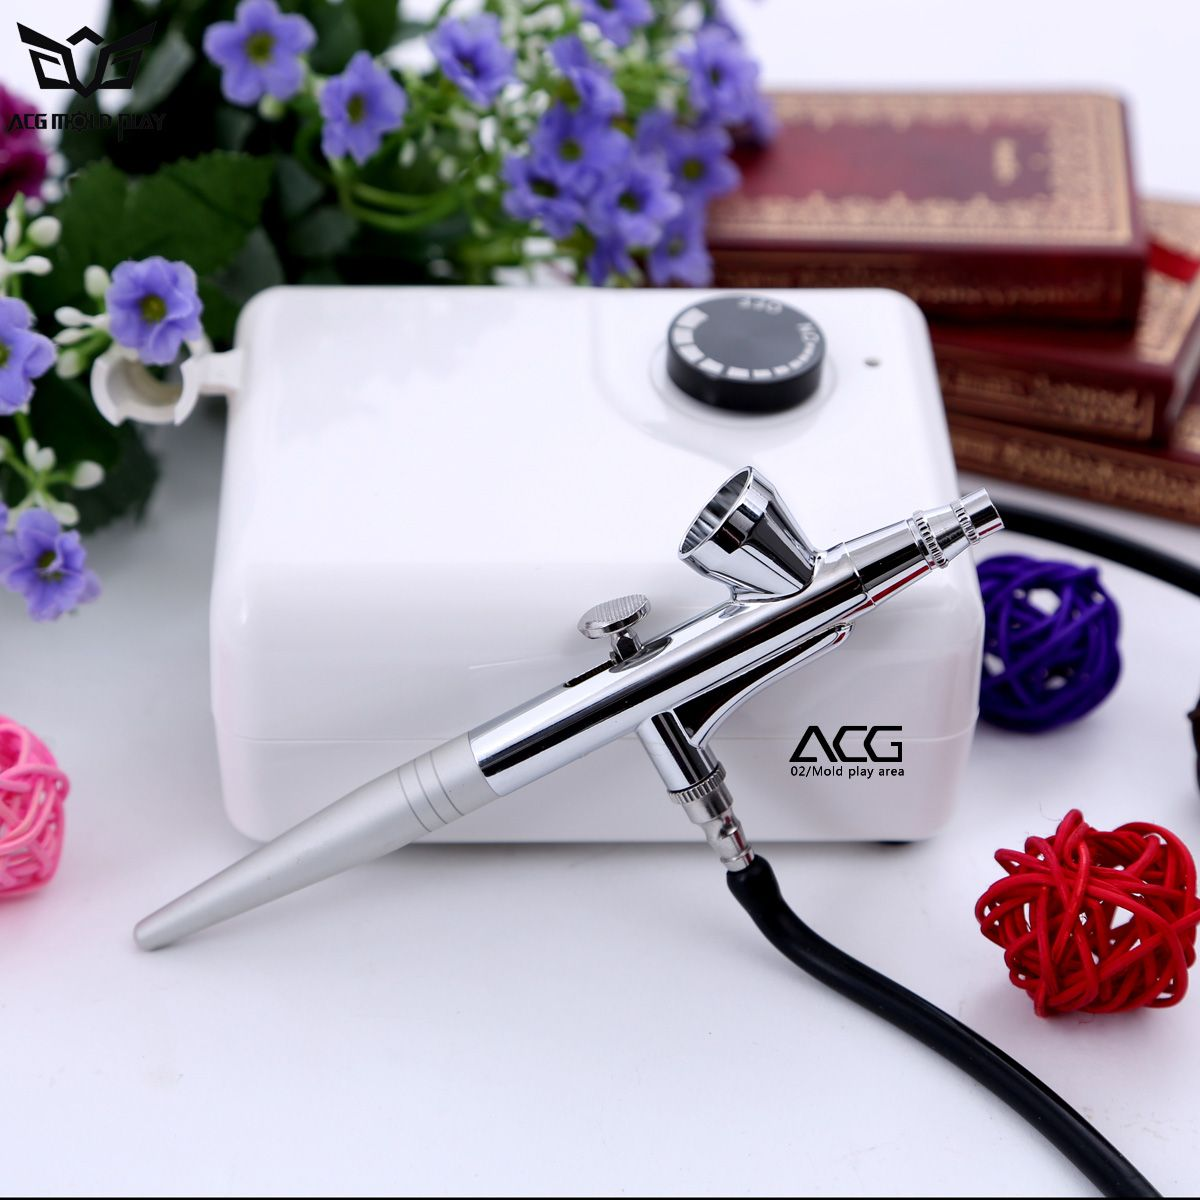 Mini HD Makeup Airbrush Air Compressor Oxygen Spray